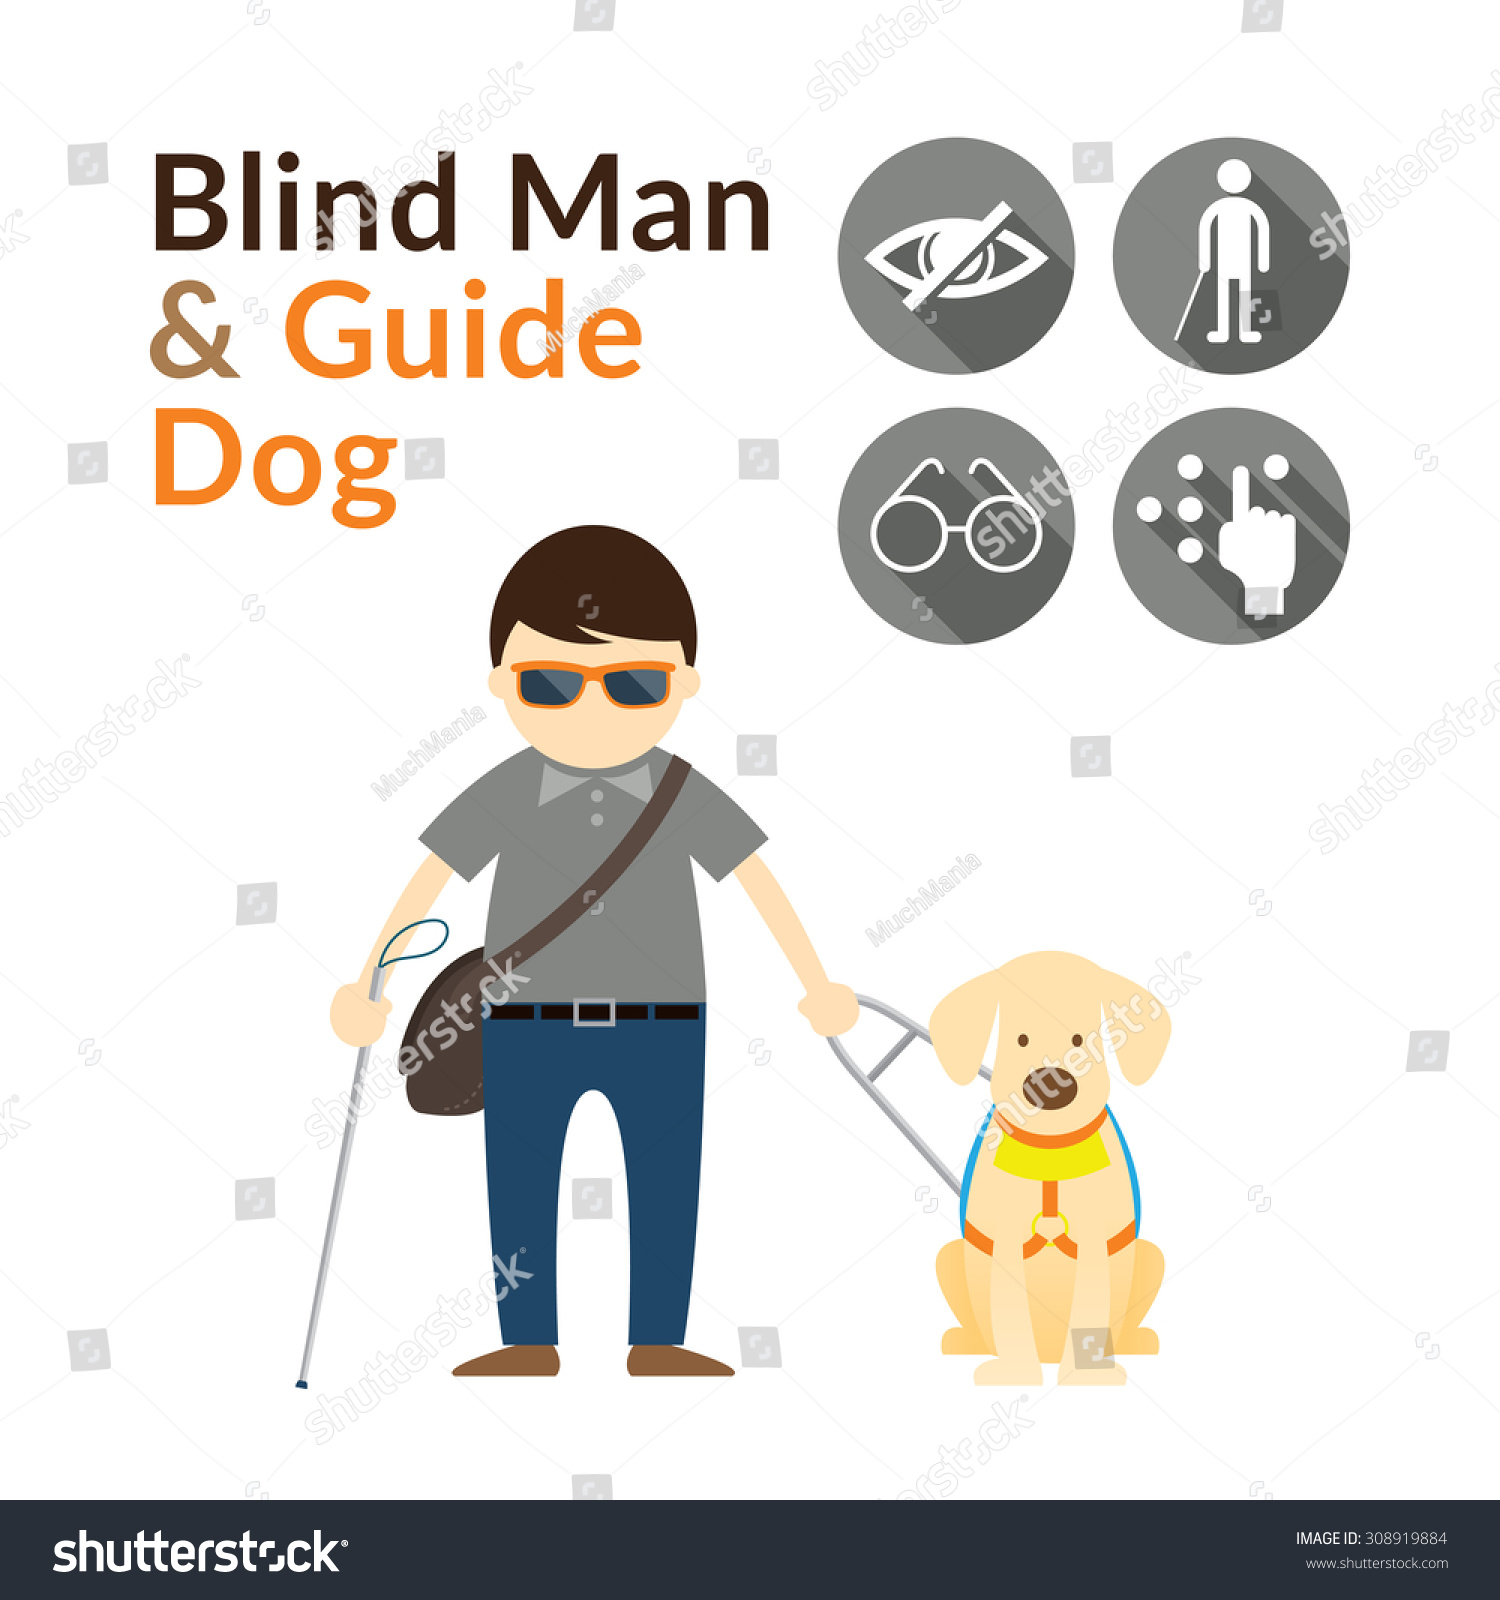 Blind Man With Guide Dog Seeing Eye Dog Illustrate And Icons